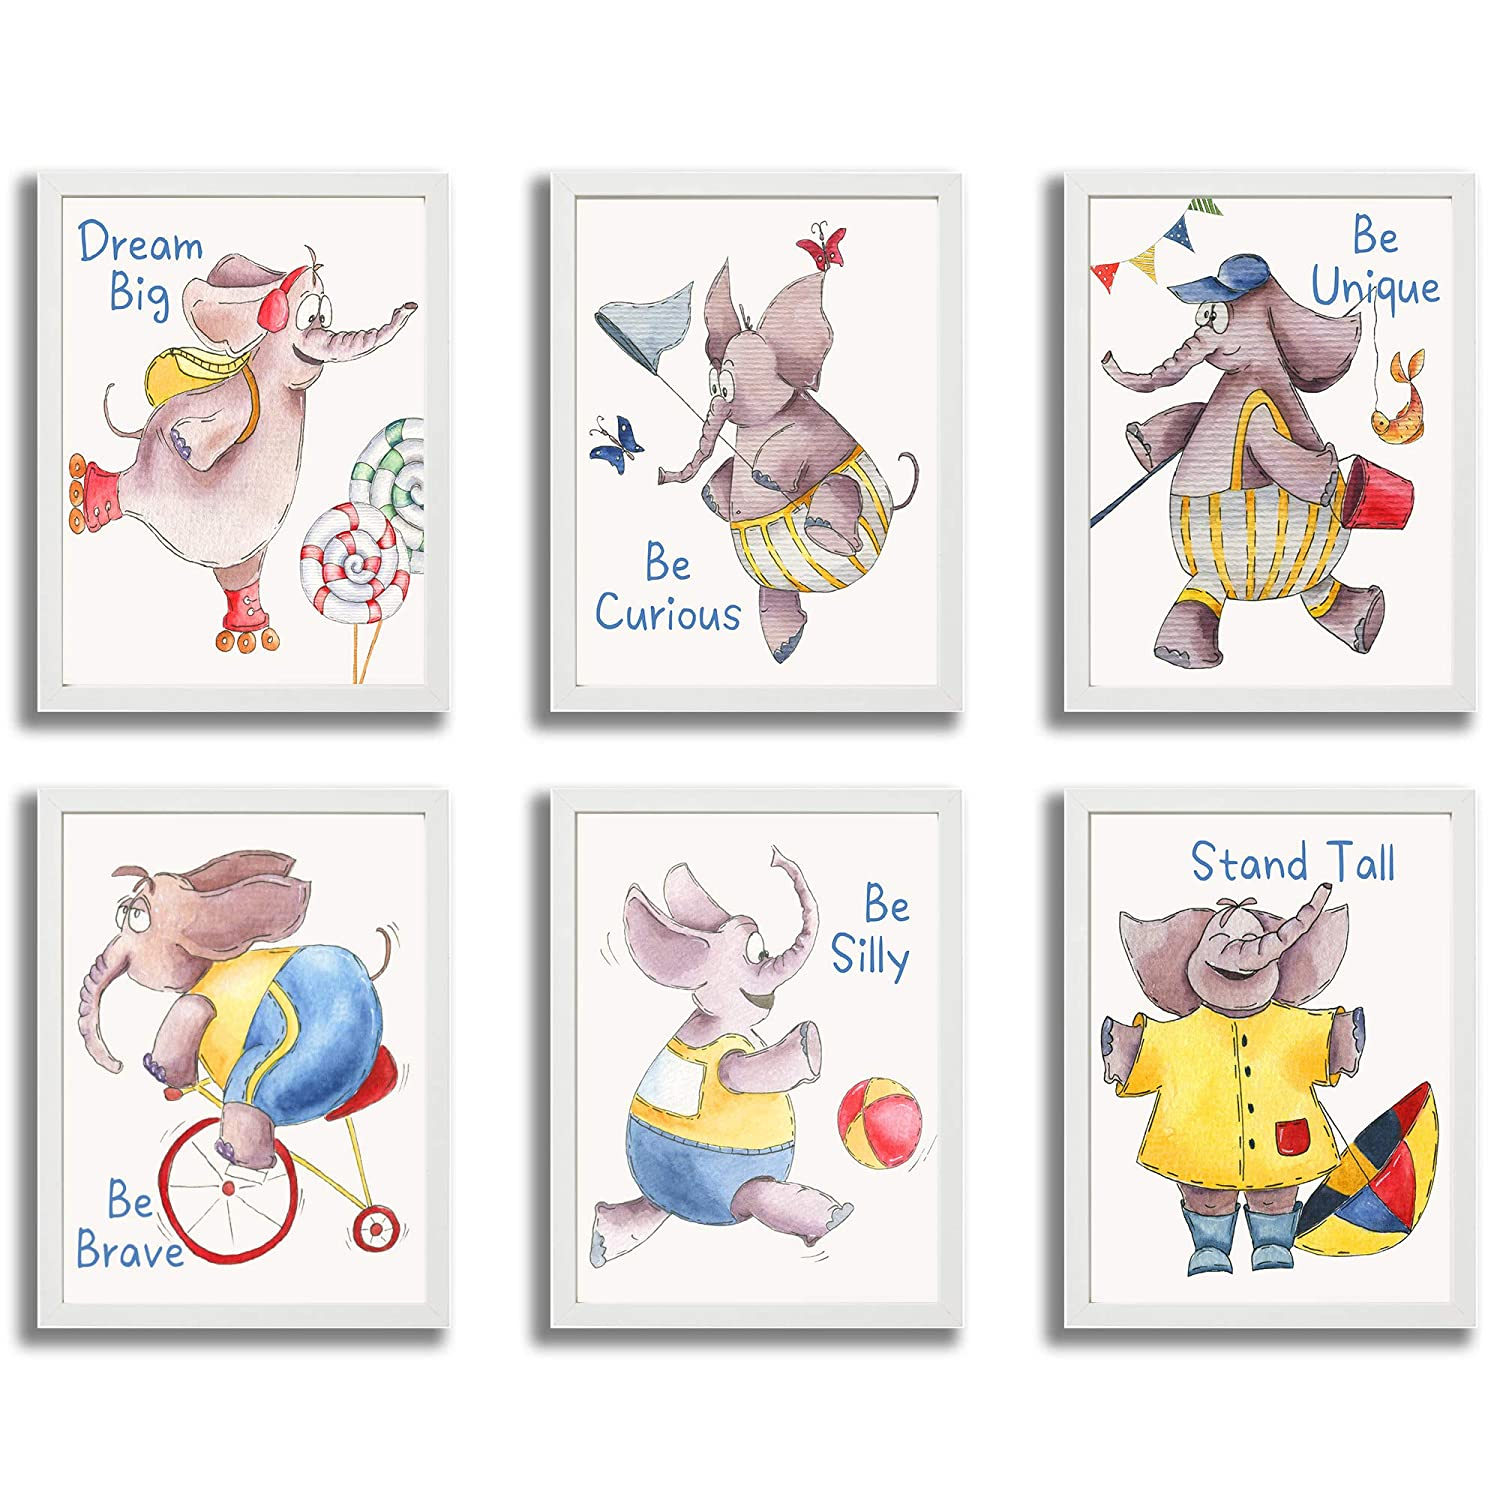 ETIUC Watercolor Elephant Nursery Wall Decor Inspirational Quotes Kids Room Wall Art Prints Unframed Set of 6 8x10in Safari Animals New Born Infant Baby Boy Girl Bedroom Jungle Zoo Prints